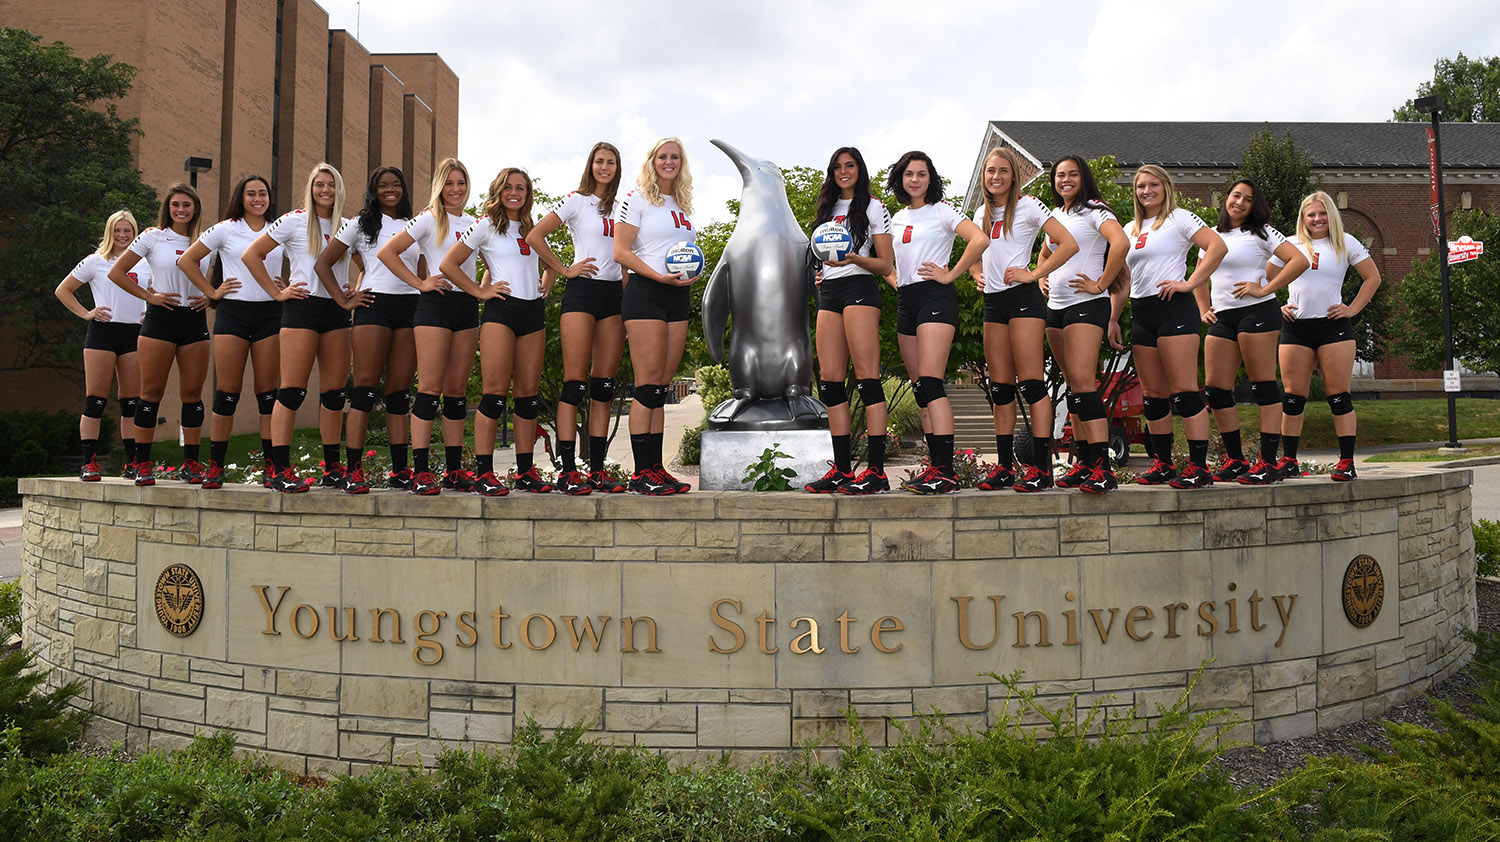 2018 Youngstown State Volleyball Team